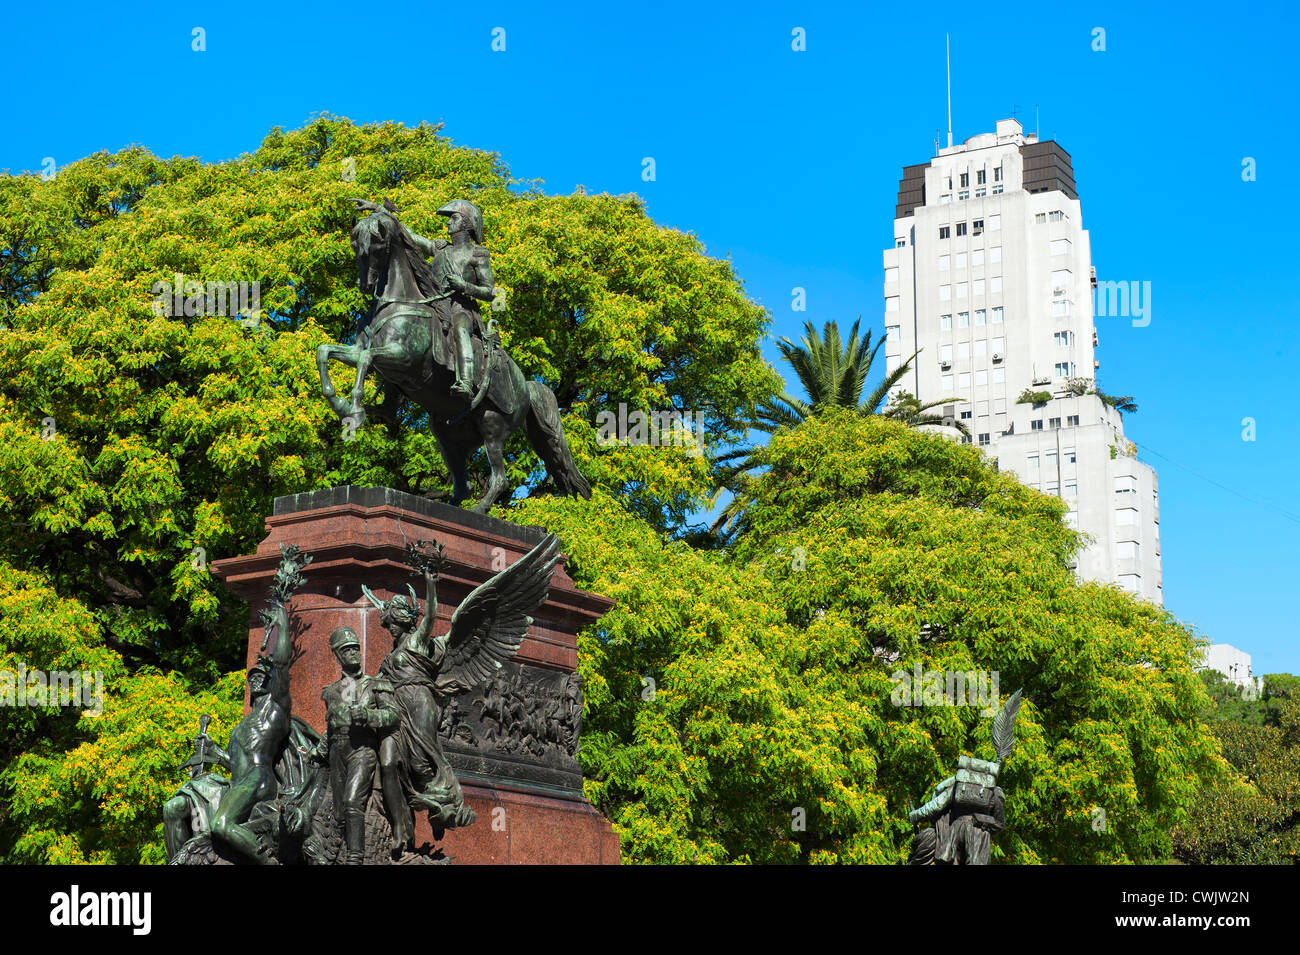 General San Martin Monument, Plaza San Martin, Buenos Aires, Argentina - Stock Image